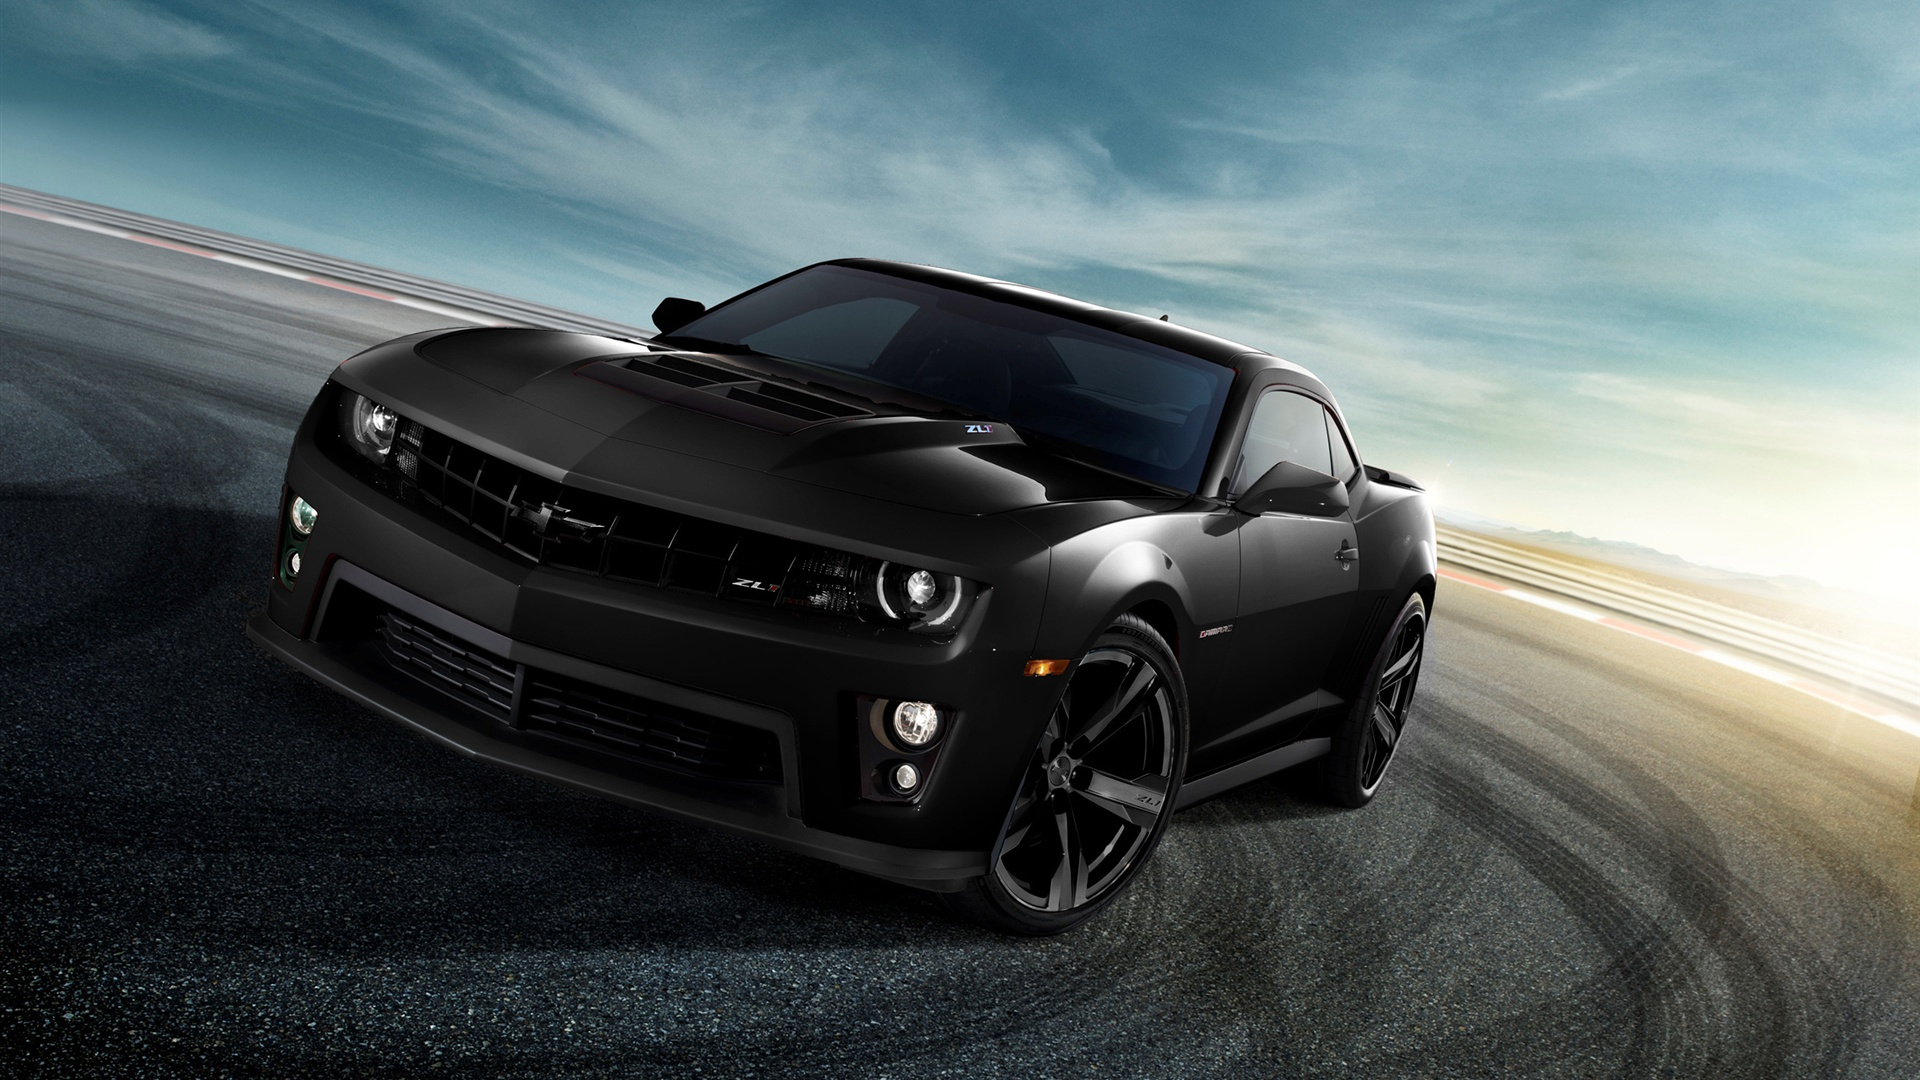 fonds d 39 cran t l charger 1920x1080 chevrolet camaro zl1 noir auto full hd fond hd. Black Bedroom Furniture Sets. Home Design Ideas